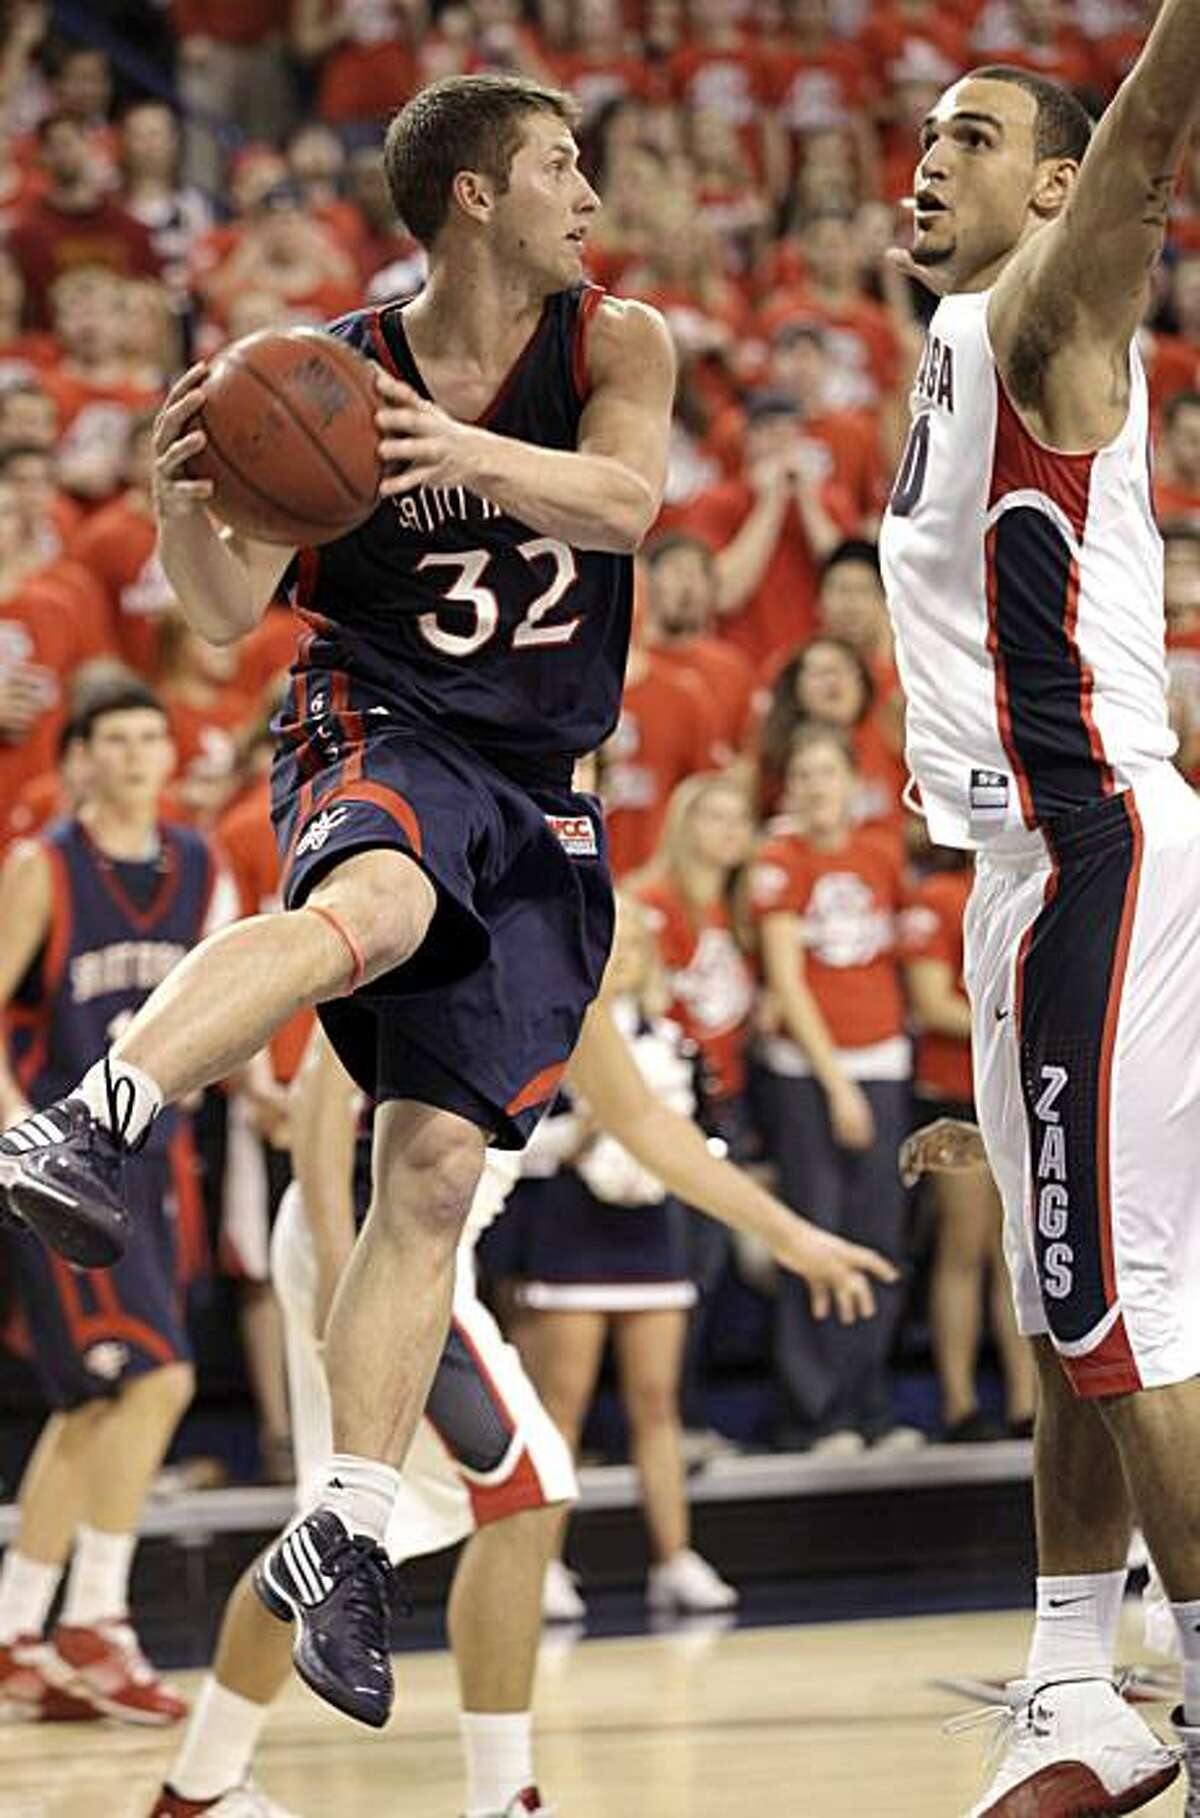 St. Mary's Mickey McConnell(32) looks to pass against Gonzaga's Robert Sacre during the second half of their NCAA college basketball game at the McCarthey Athletic Center in Spokane, Wash. Thursday, Feb.11, 2010.